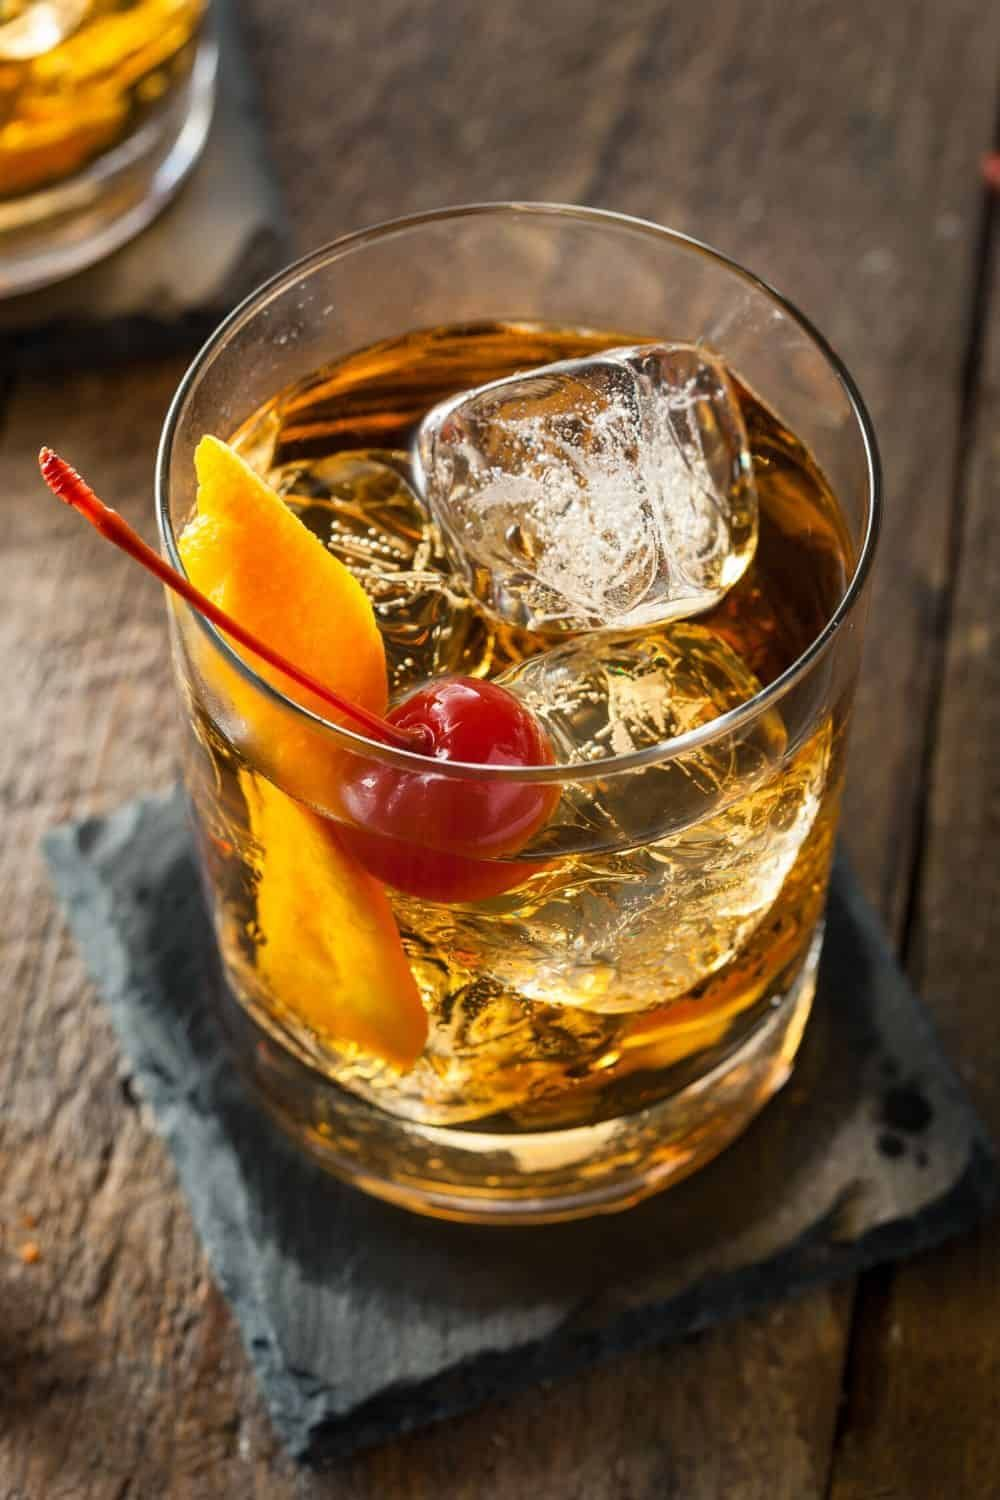 How To Make An Old Fashioned In Two Minutes Recipe Alcohol Drink Recipes Old Fashioned Drink Popular Cocktail Recipes